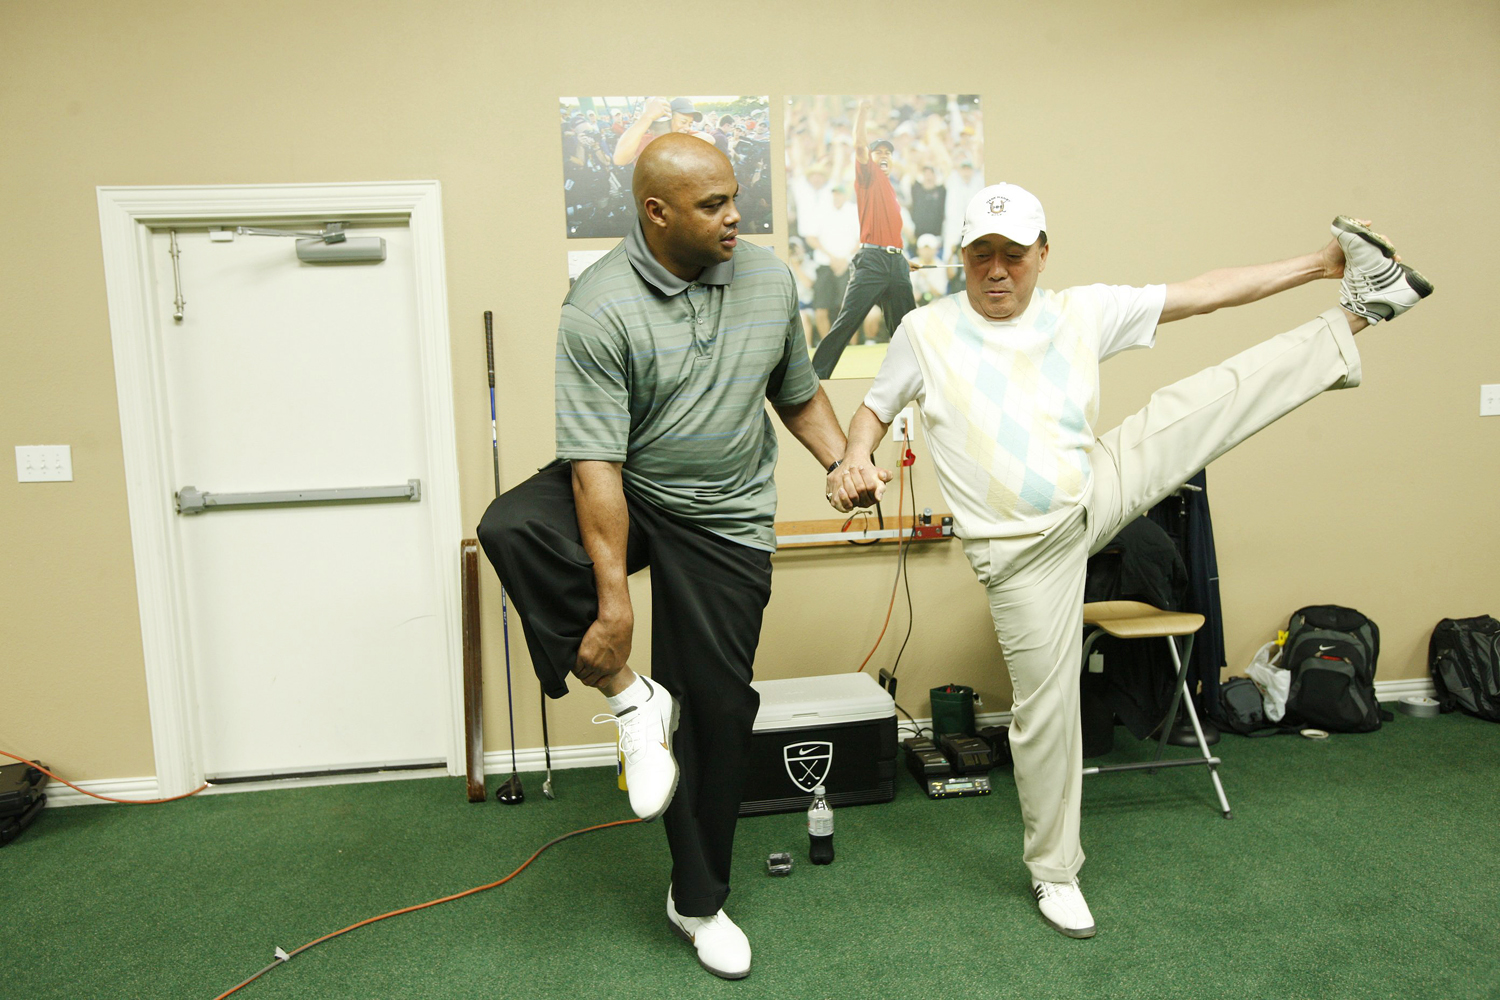 NBA on TNT announcer and former NBA basketball player Charles Barkley stretching with golf instructor Suckki Jang during taping for the Golf Channel's reality TV show The Haney Project at Hank Haney Golf Ranch at Vista Ridge.